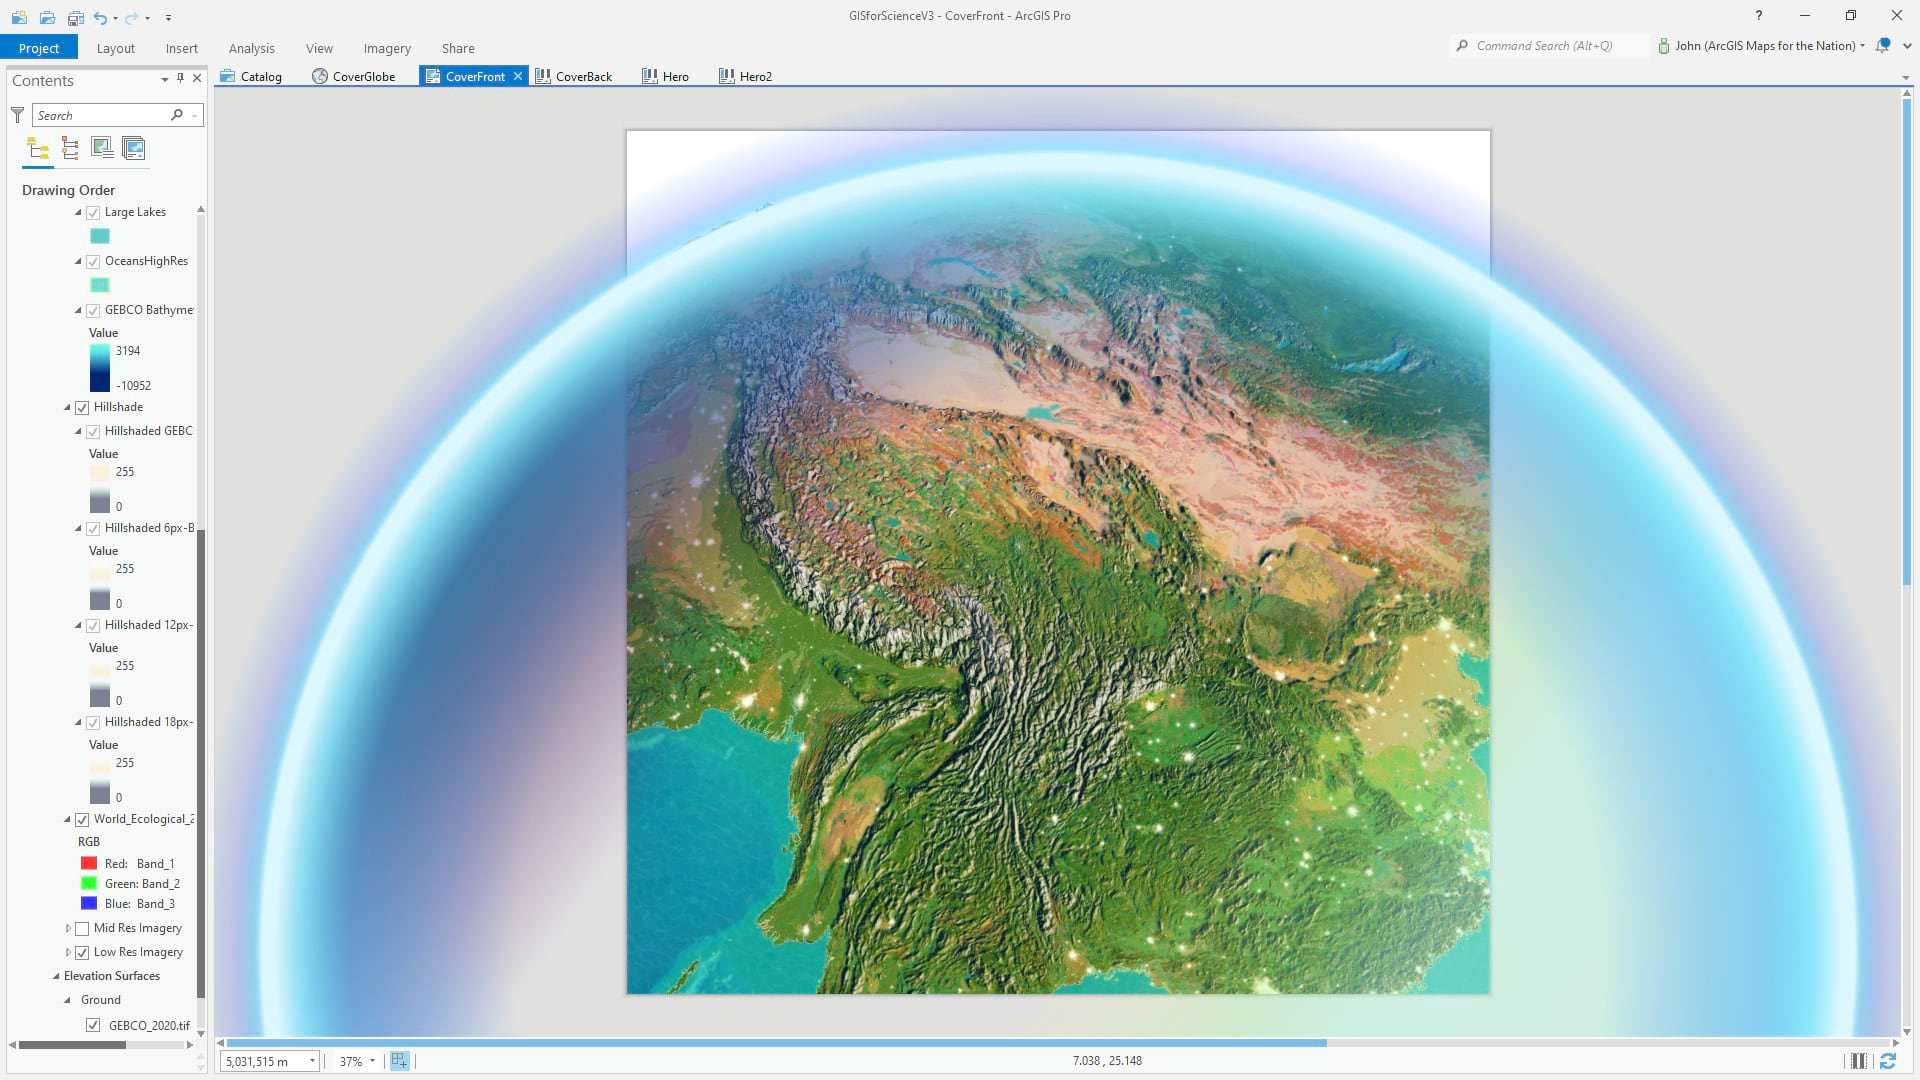 ArcGIS Pro 3D global scene with a hacked atmospheric effect.